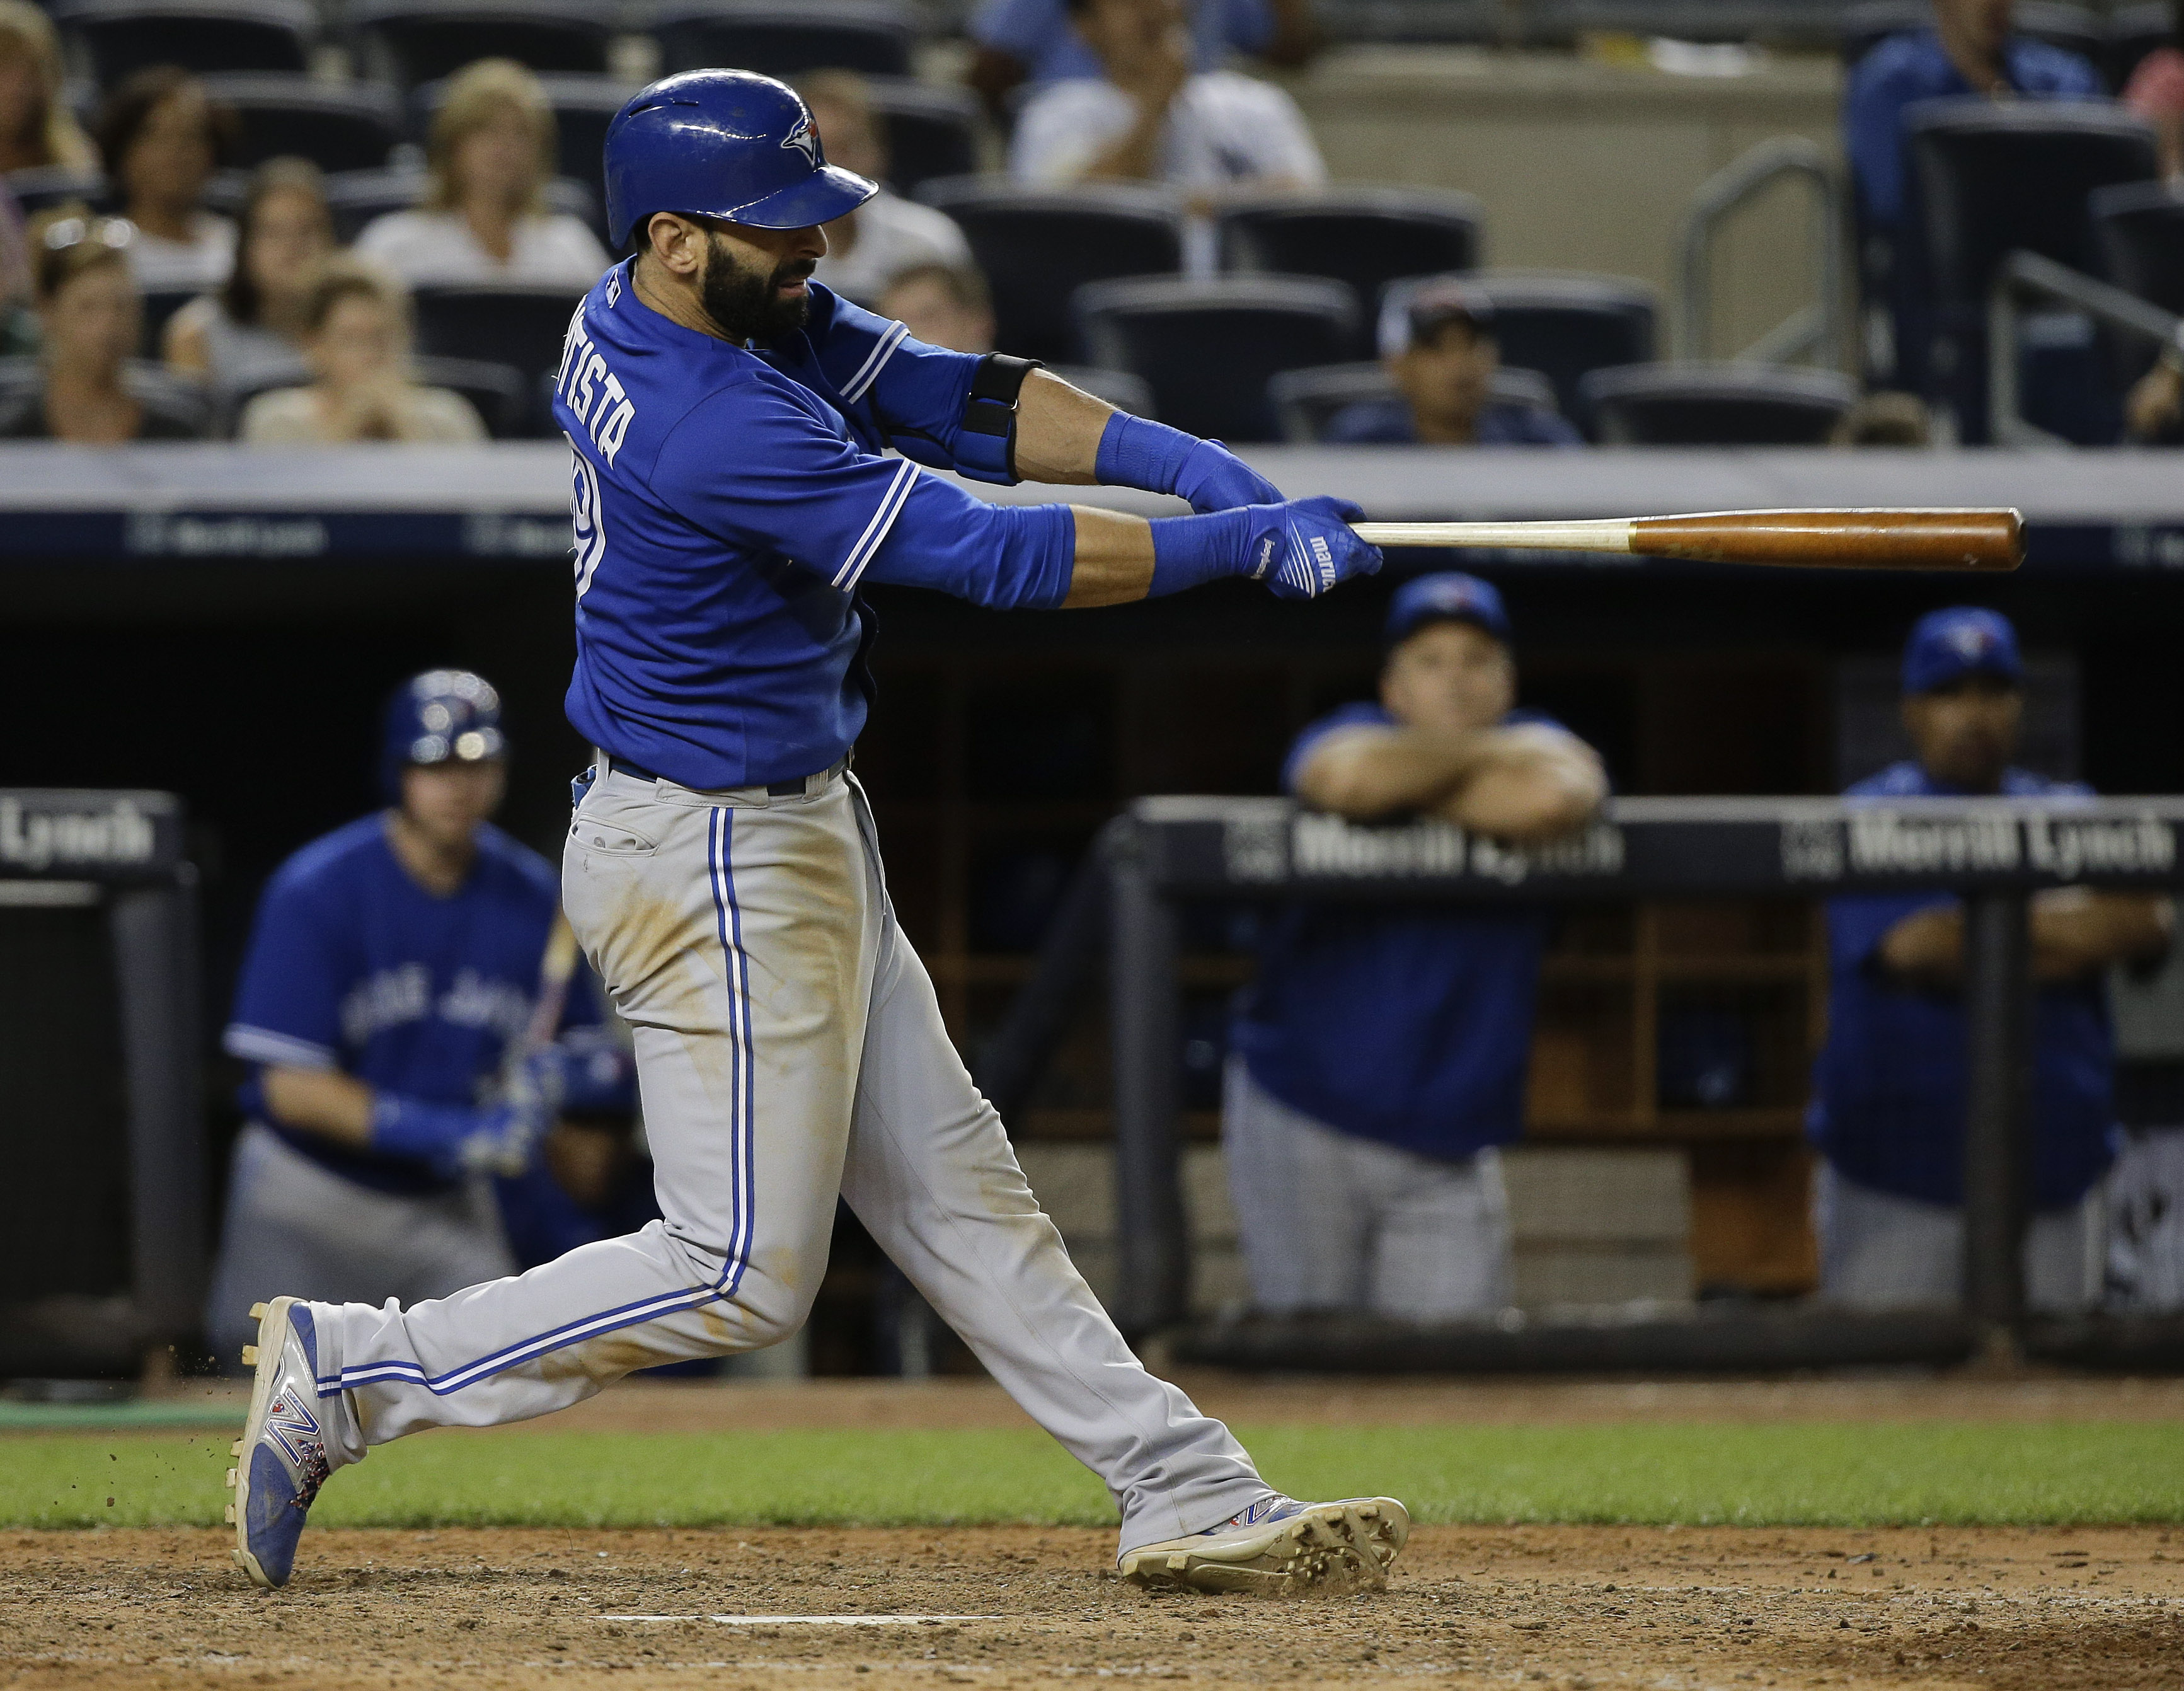 Toronto Blue Jays right fielder Jose Bautista follows through on a home run during the 10th inning of a baseball game against the New York Yankees, Friday, Aug. 7, 2015, in New York. The Blue Jays won 2-1 in 10 innings. (AP Photo/Julie Jacobson)